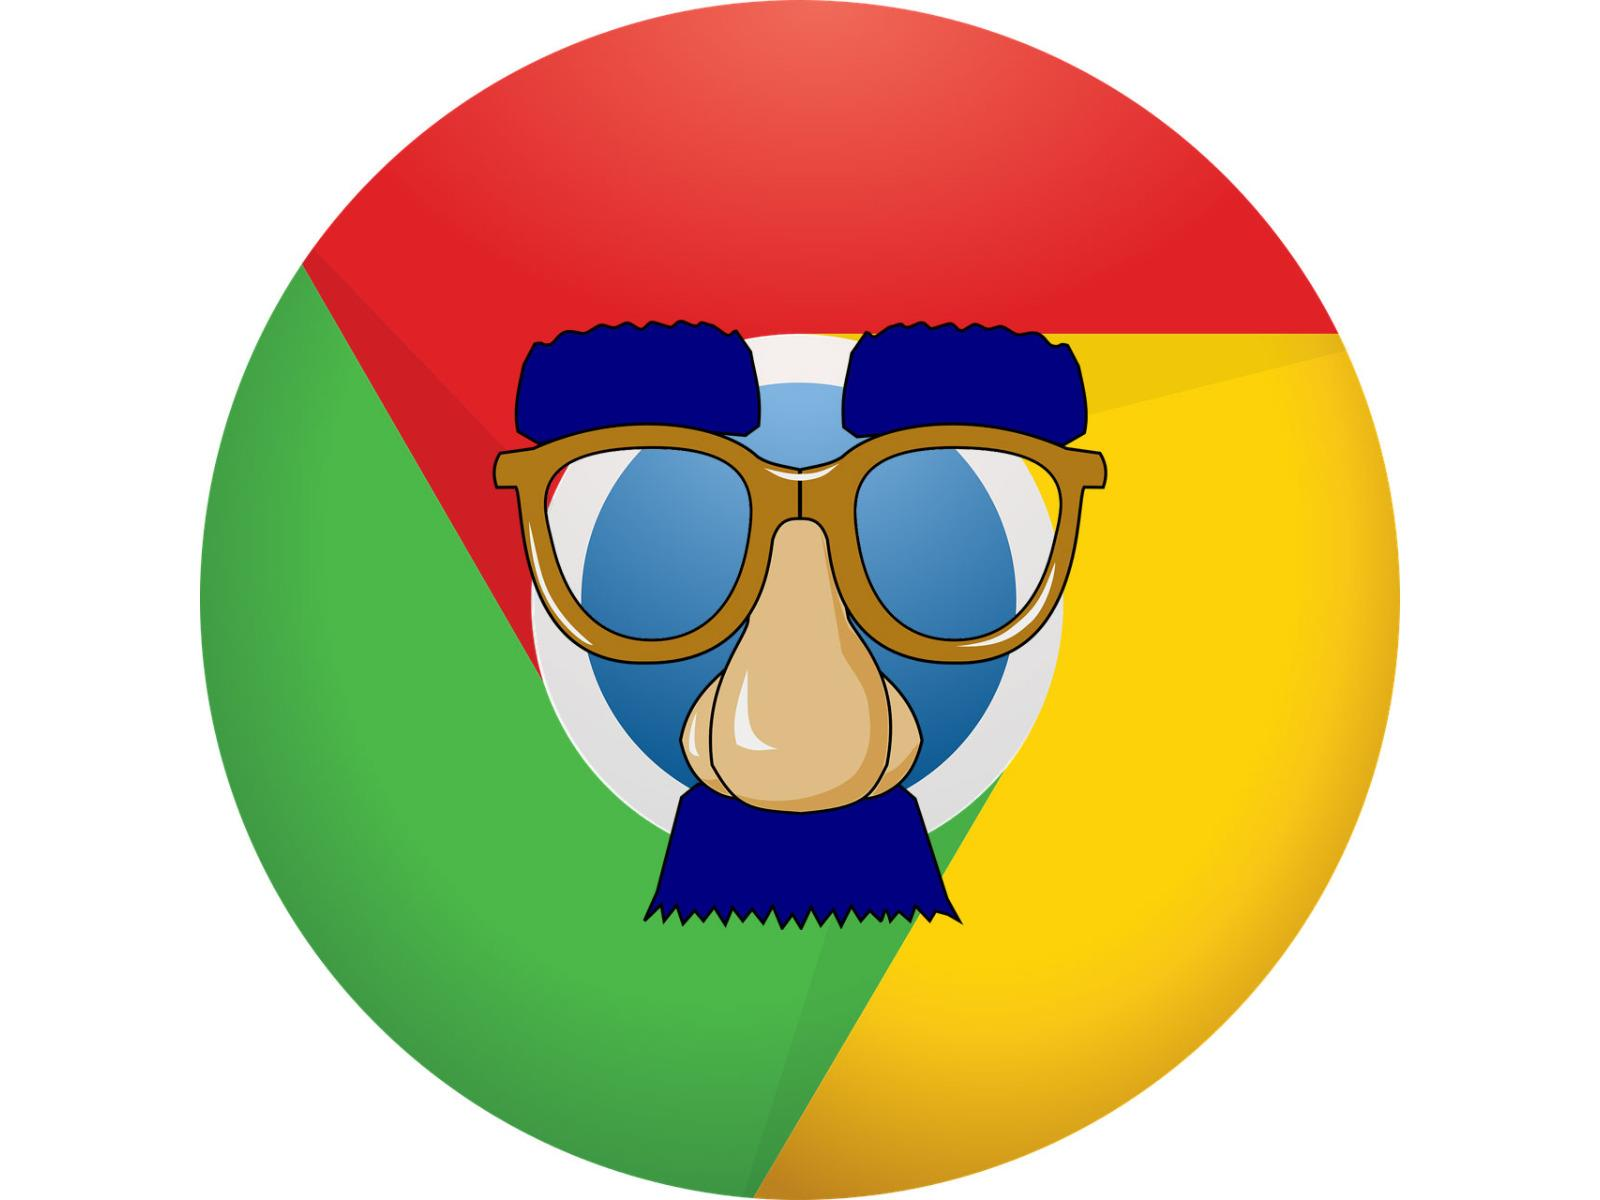 Google Chrome has become surveillance software. It's time to switch.